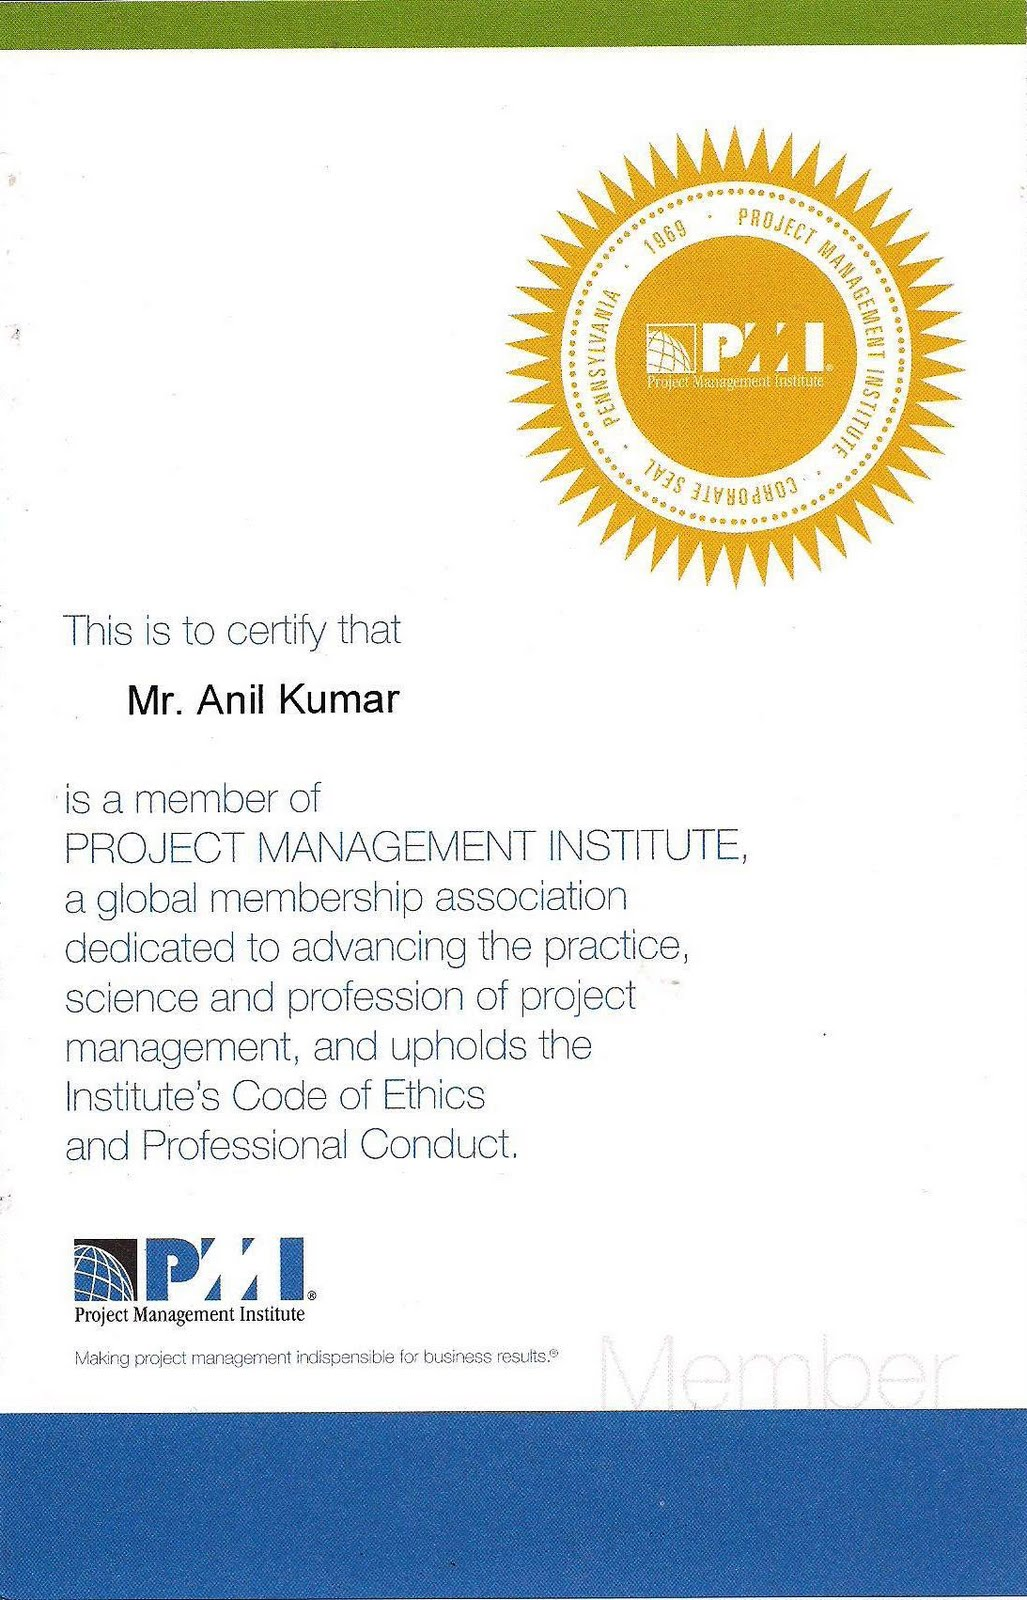 Pmi project management institute membership my world i got pmi project management institute membership recently xflitez Gallery